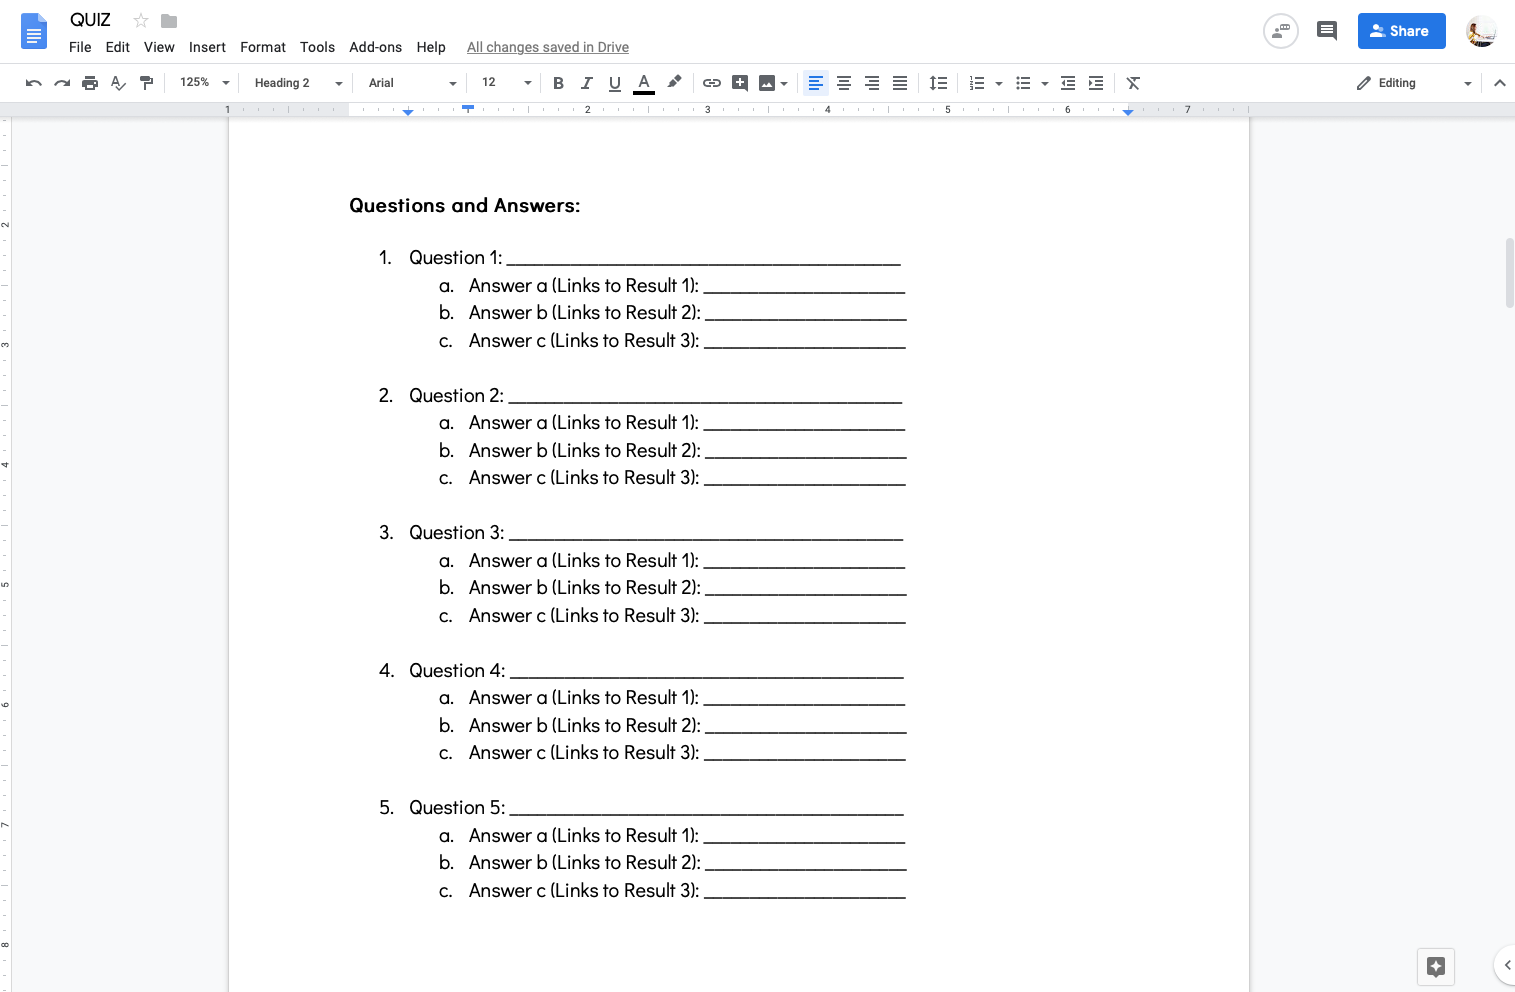 Google doc quiz template with question and answer layout